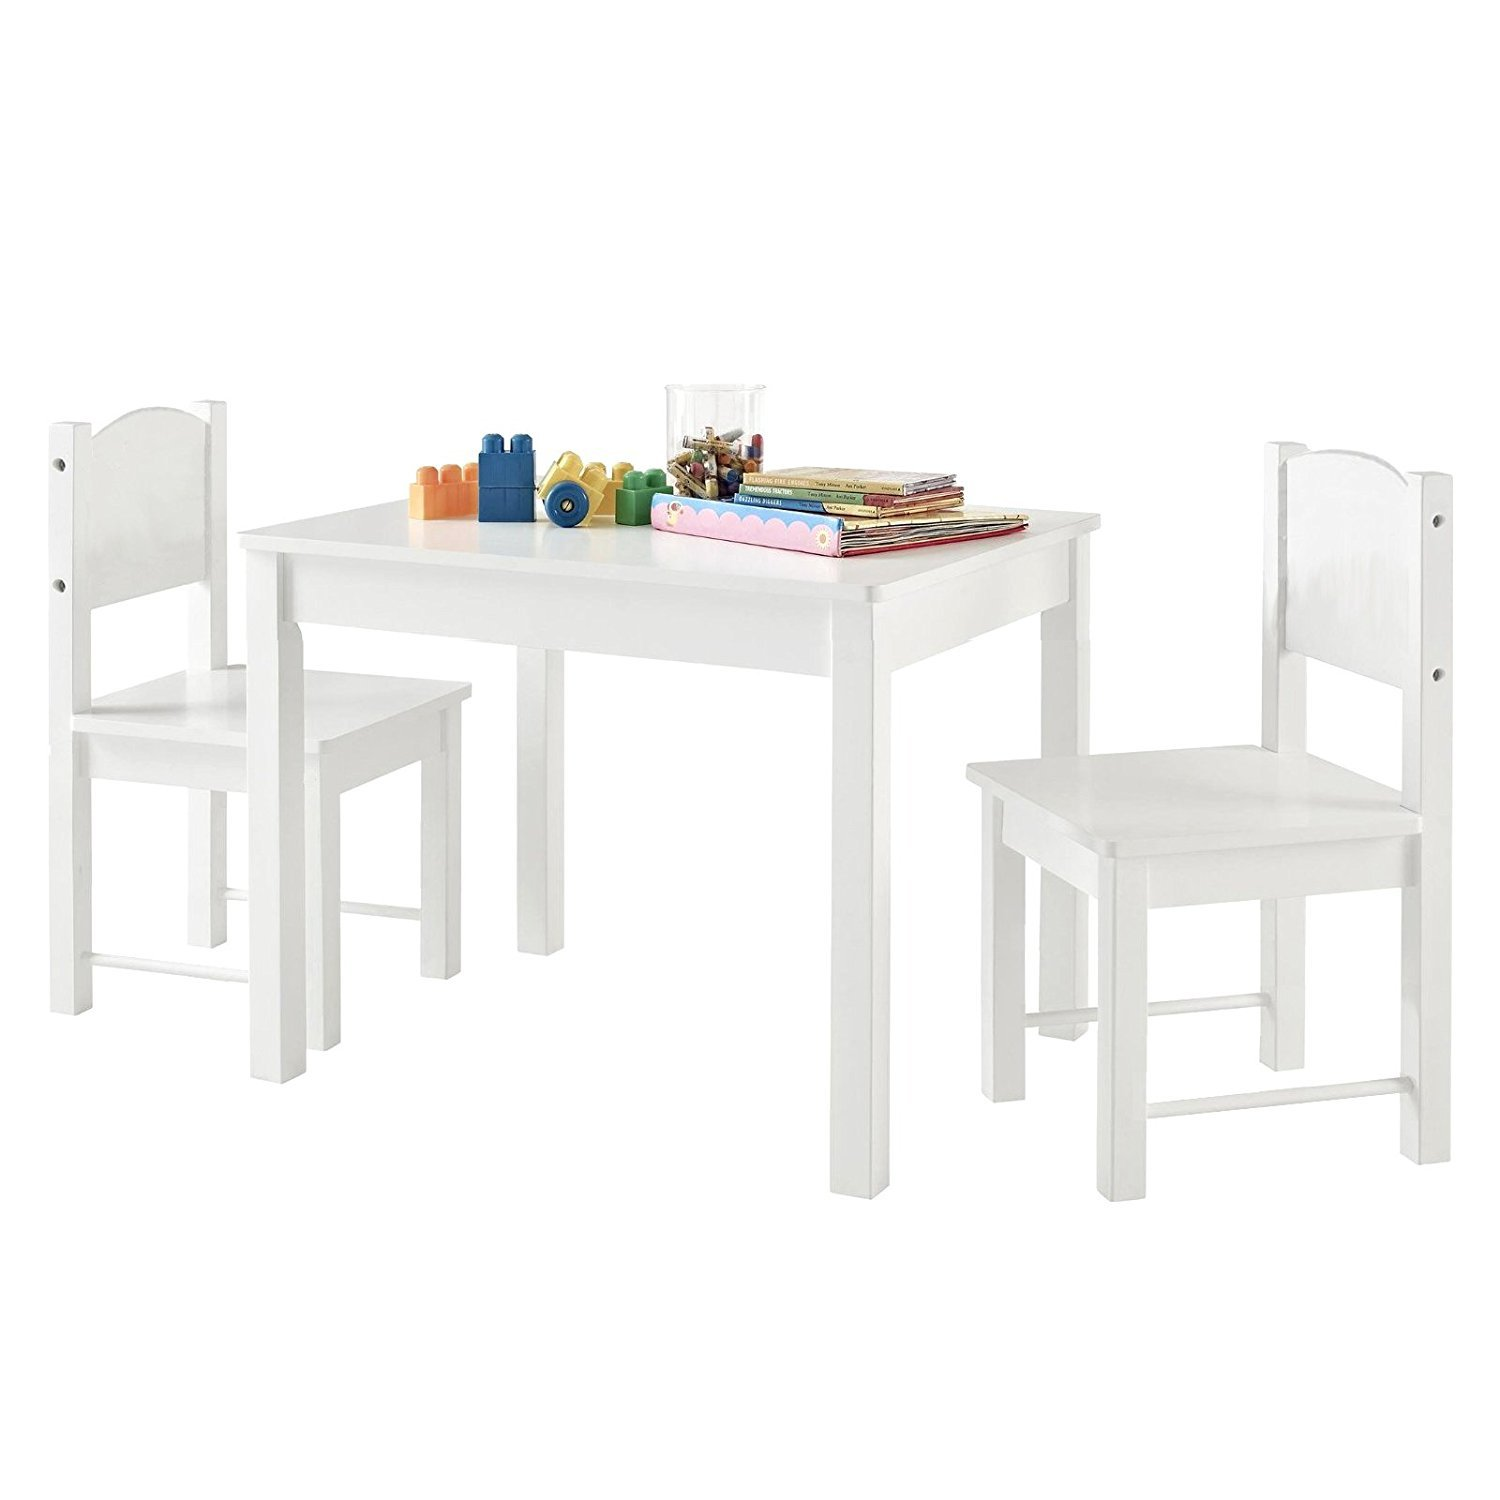 Picture of: Cheap Kids Table And Chairs Set Ikea Find Kids Table And Chairs Set Ikea Deals On Line At Alibaba Com